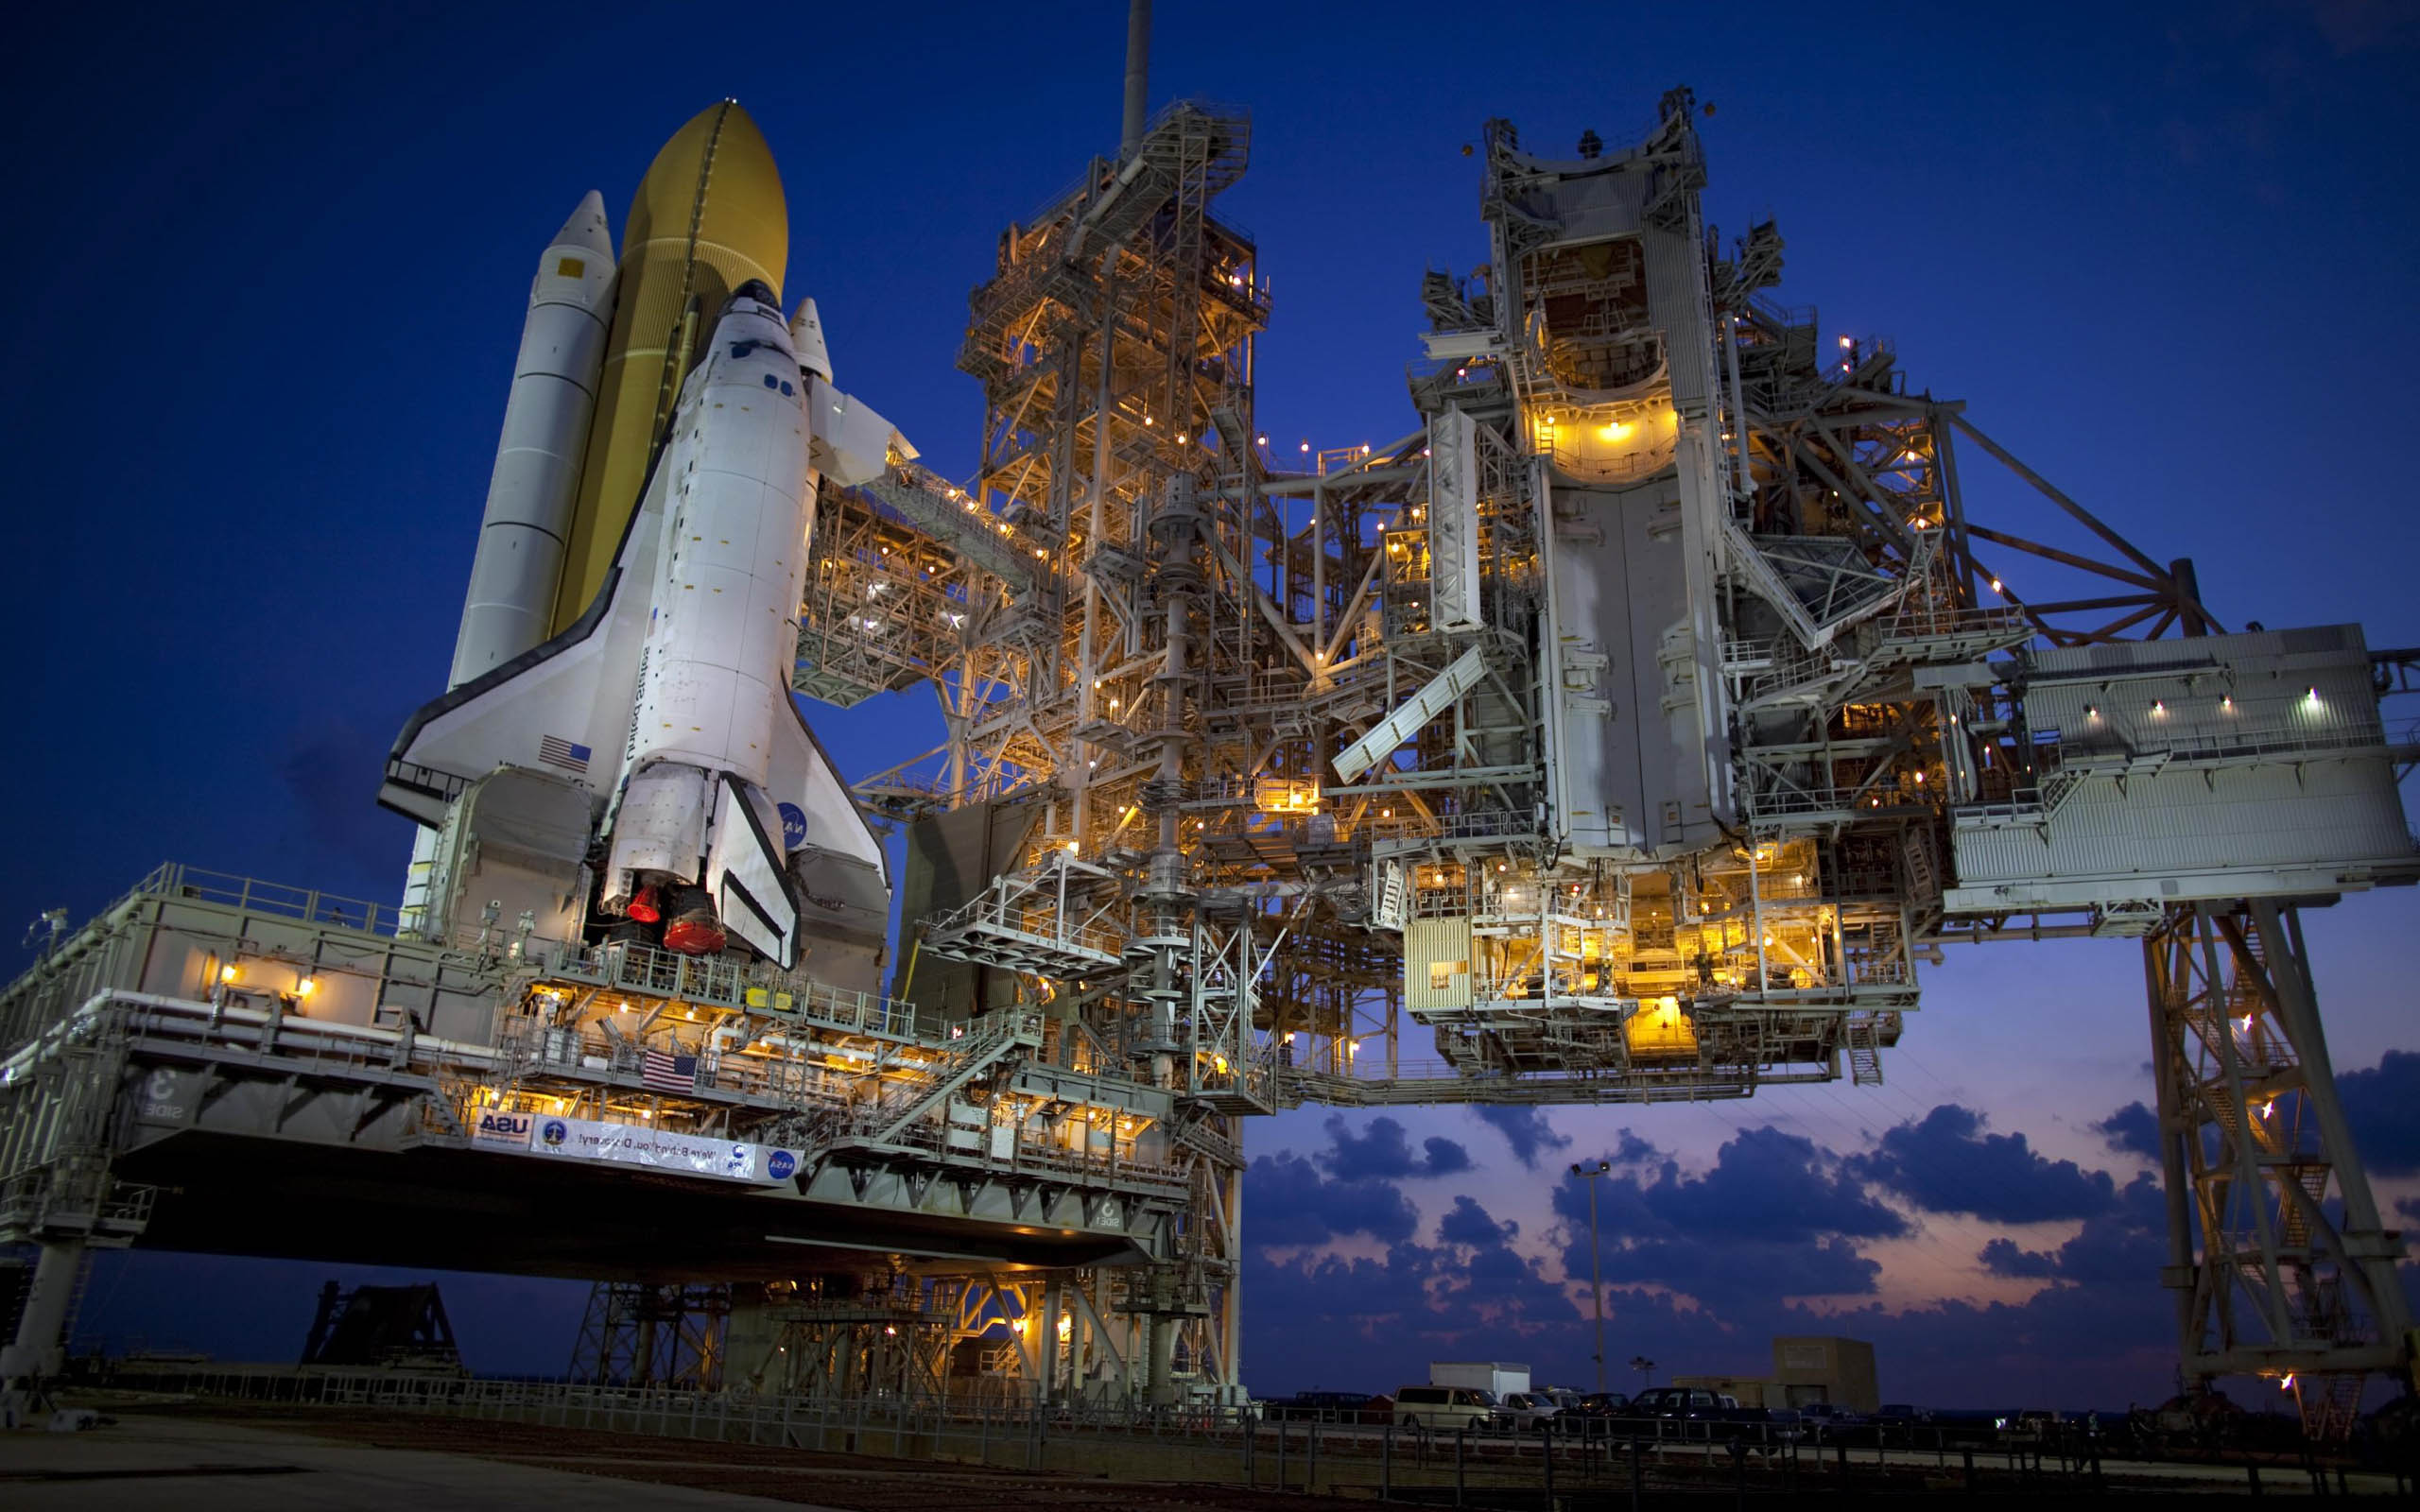 Space Shuttle Discovery Amazing Wallpapers 2017 - All HD ...